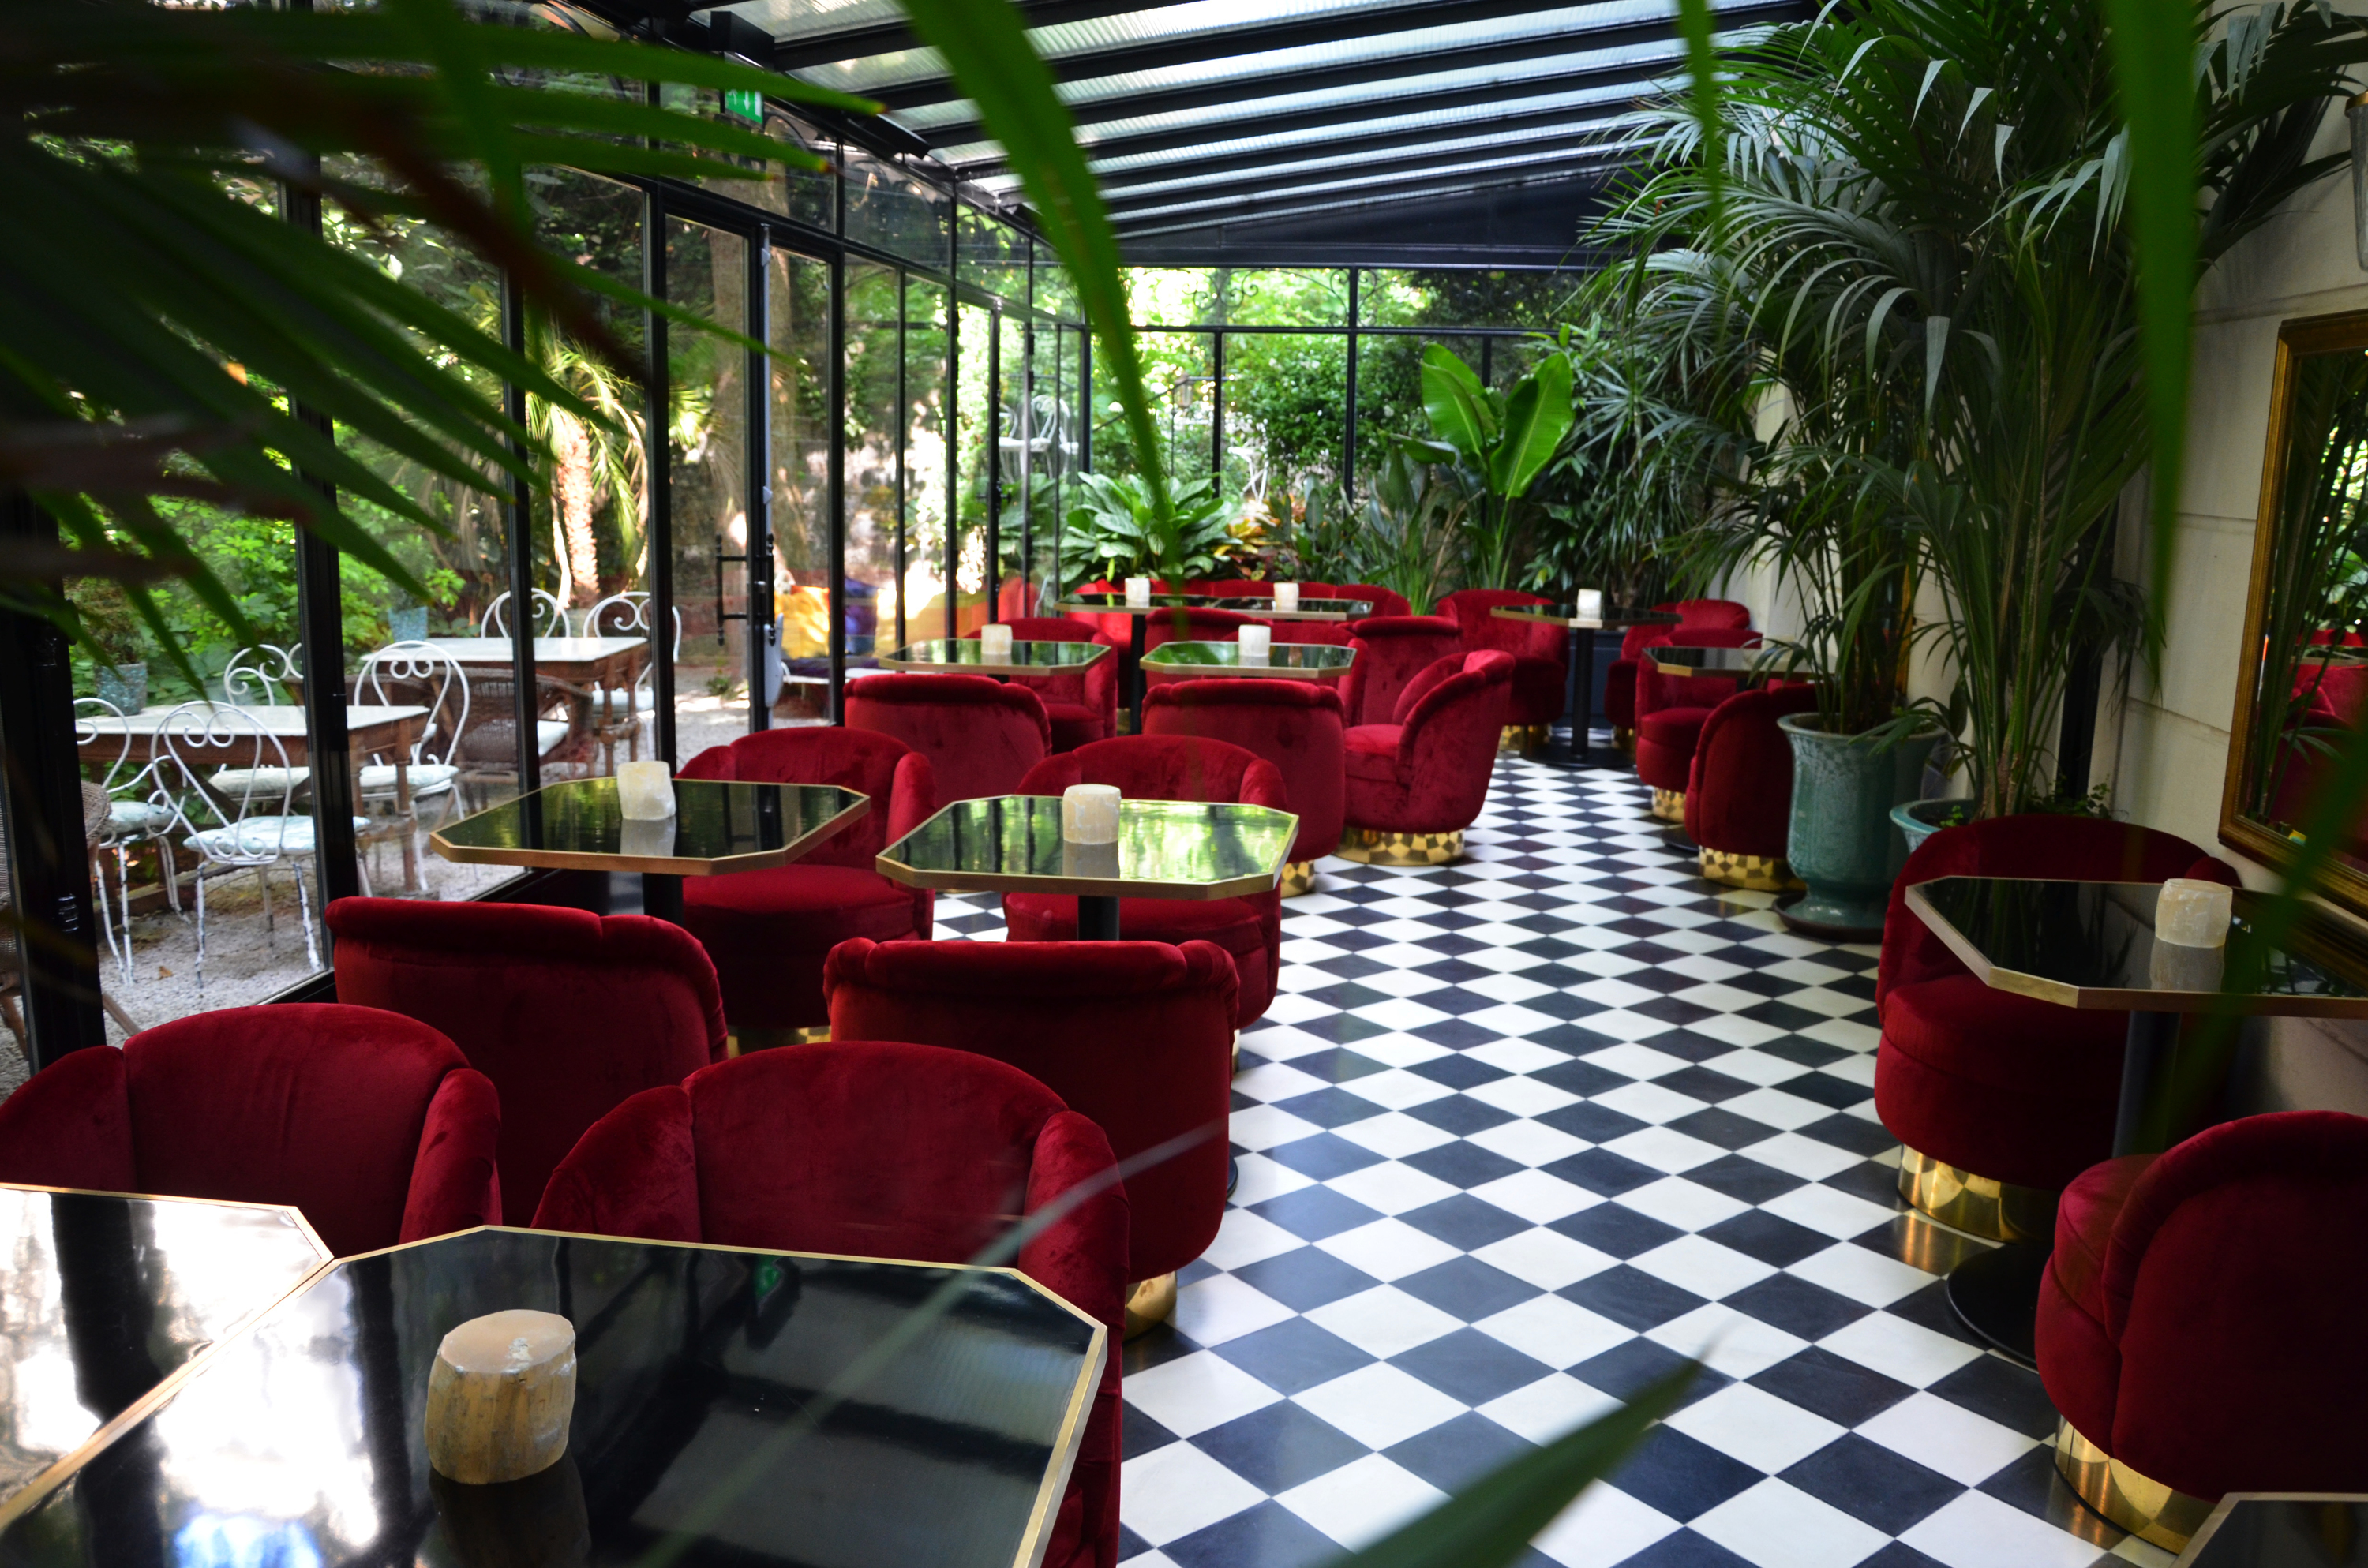 Le tr s particulier bars and pubs in montmartre paris for Bar jardin barcelona